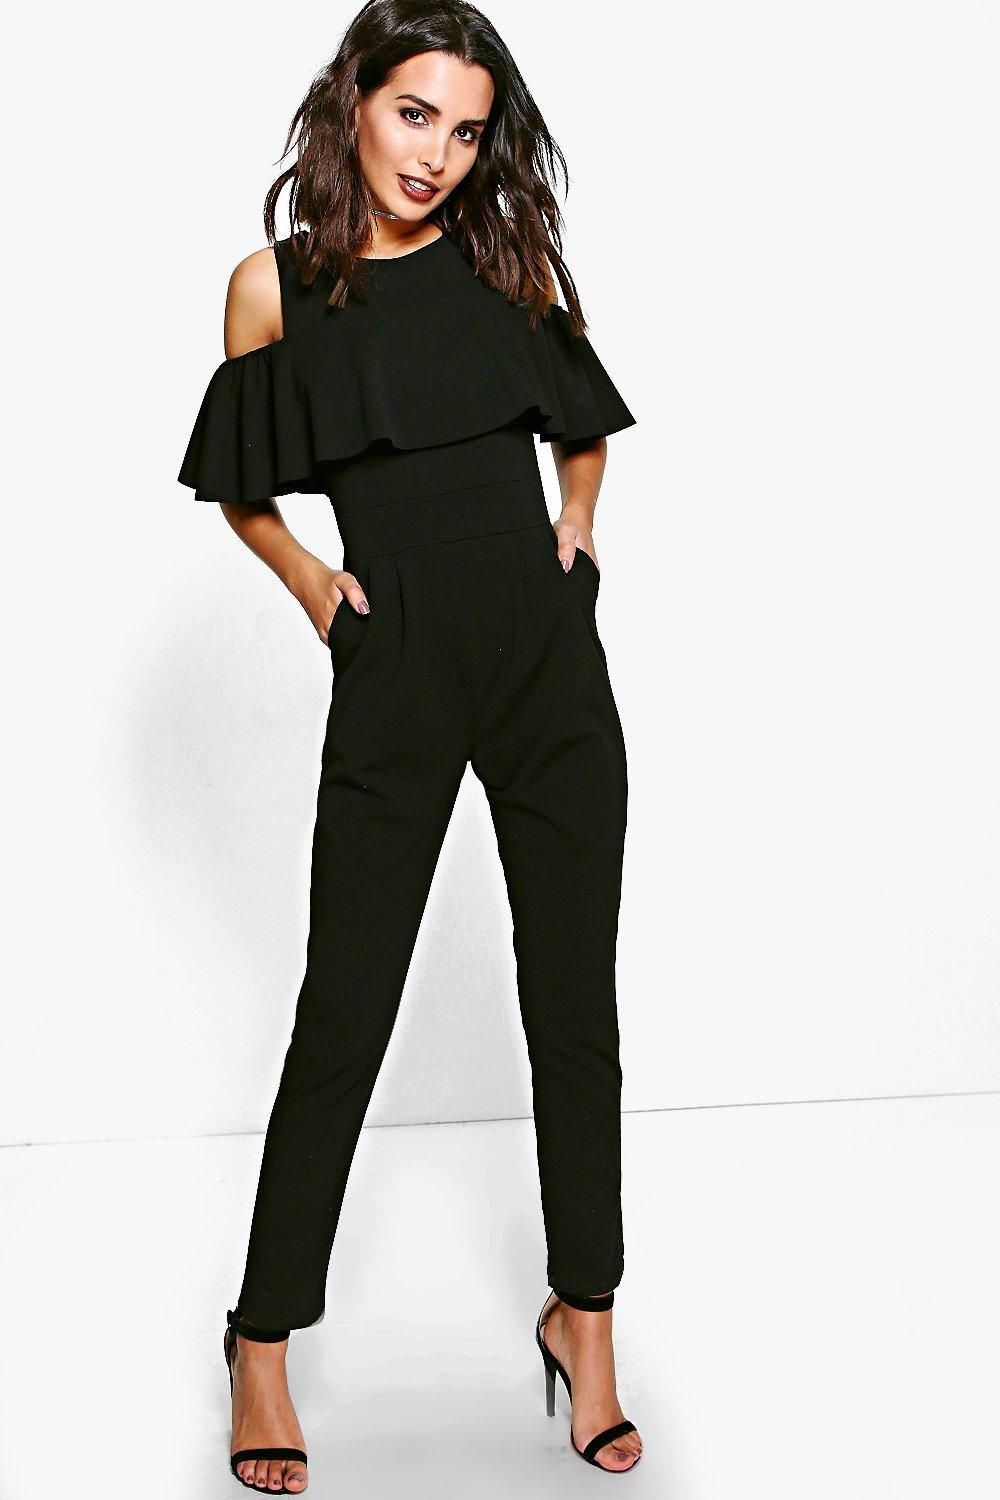 e635a80a2 Jump start your new season wardrobe with the always chic and versatile  jumpsuit. This 70s inspired one piece is an ultra-versatile day-to-night  wonder.